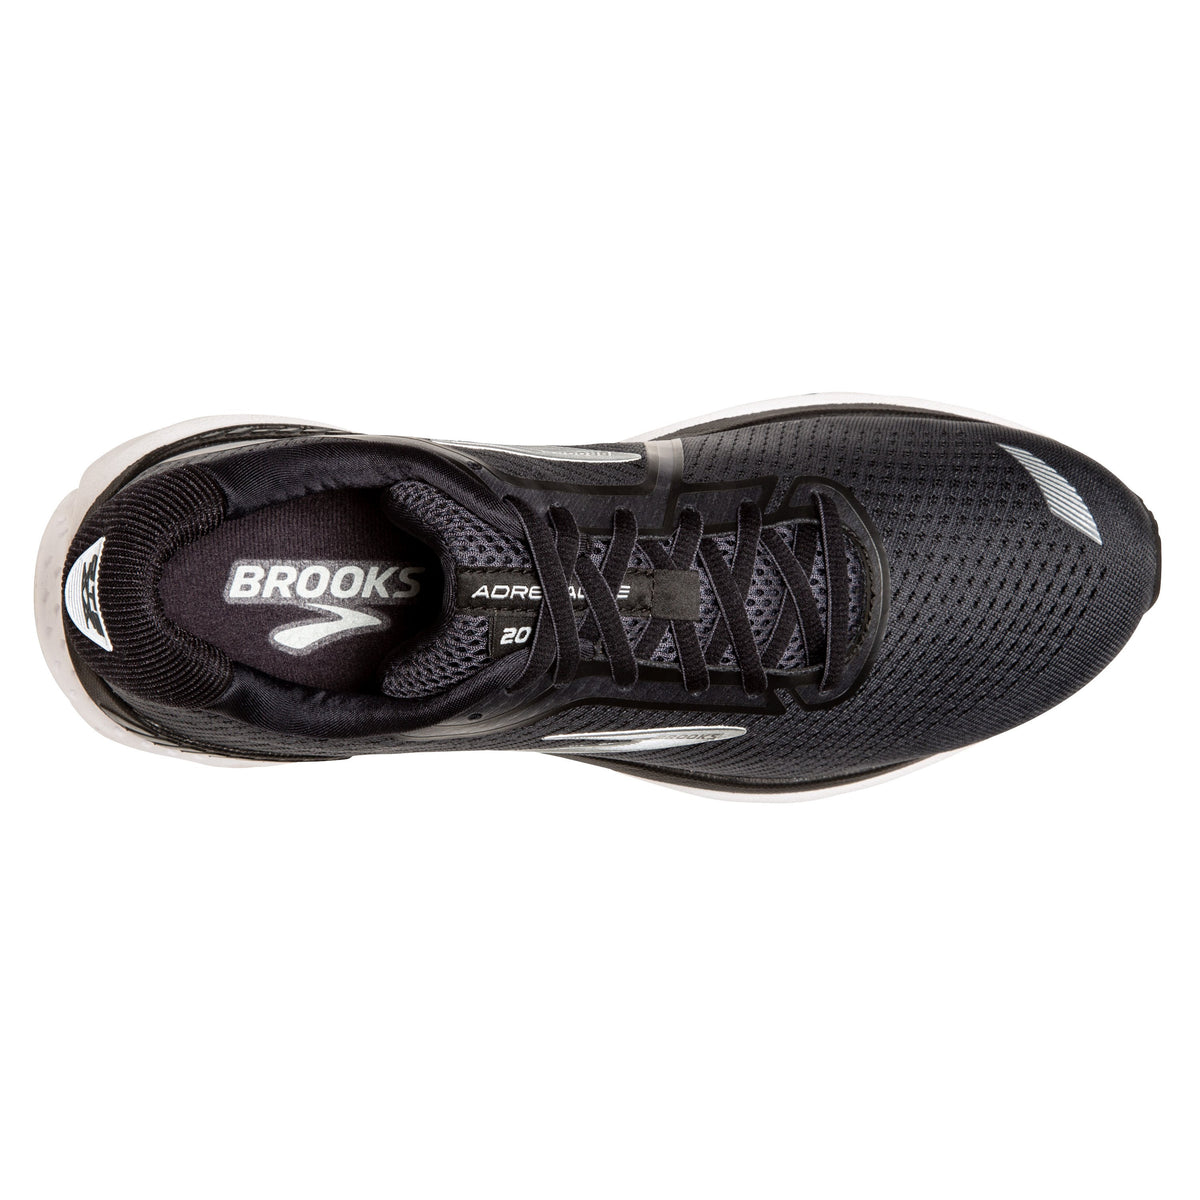 Brooks Adrenaline GTS 20 Mens 2E Wide - Sole Motive